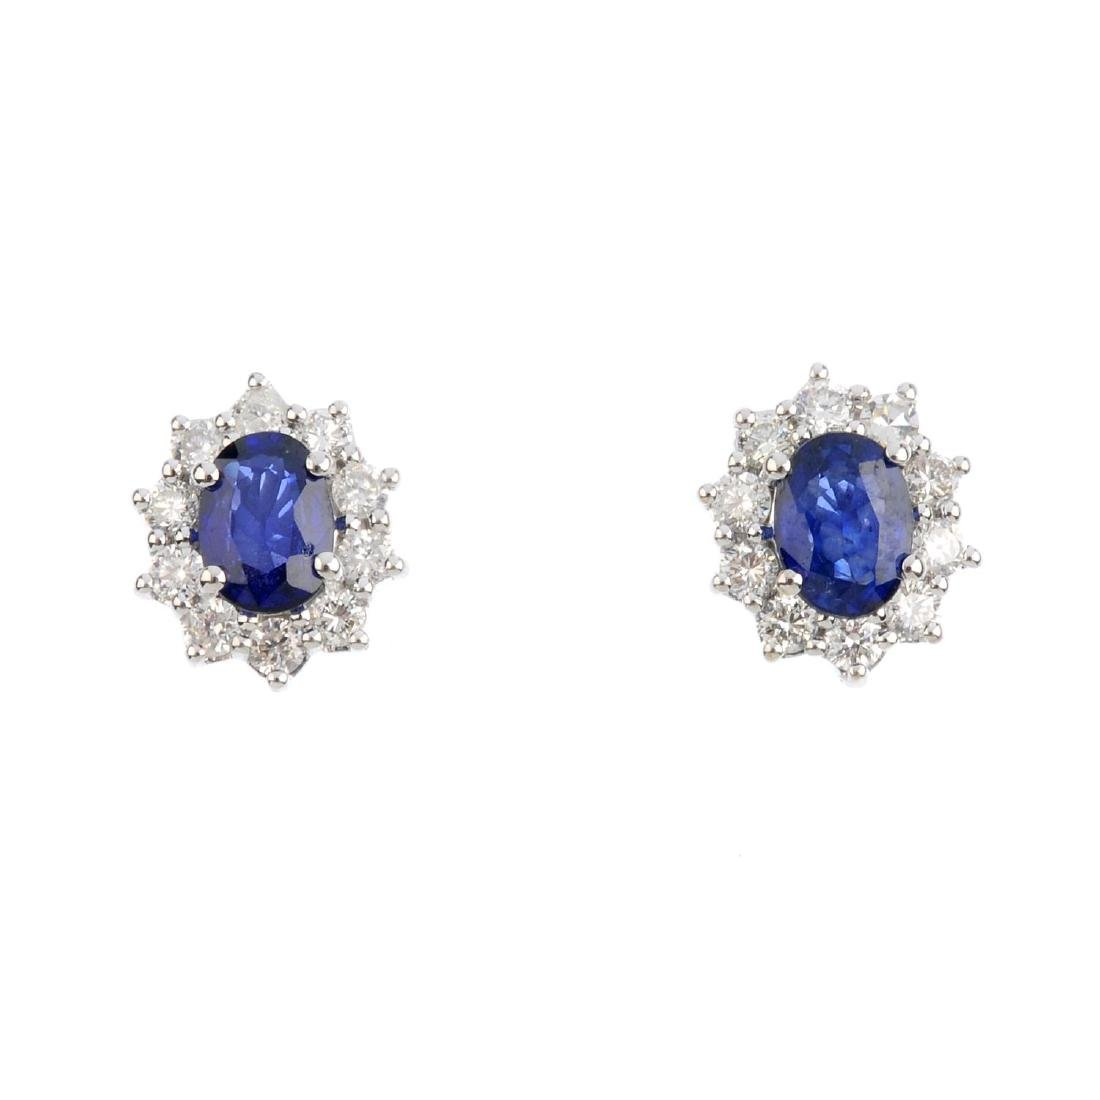 A pair of sapphire and diamond cluster earrings. The